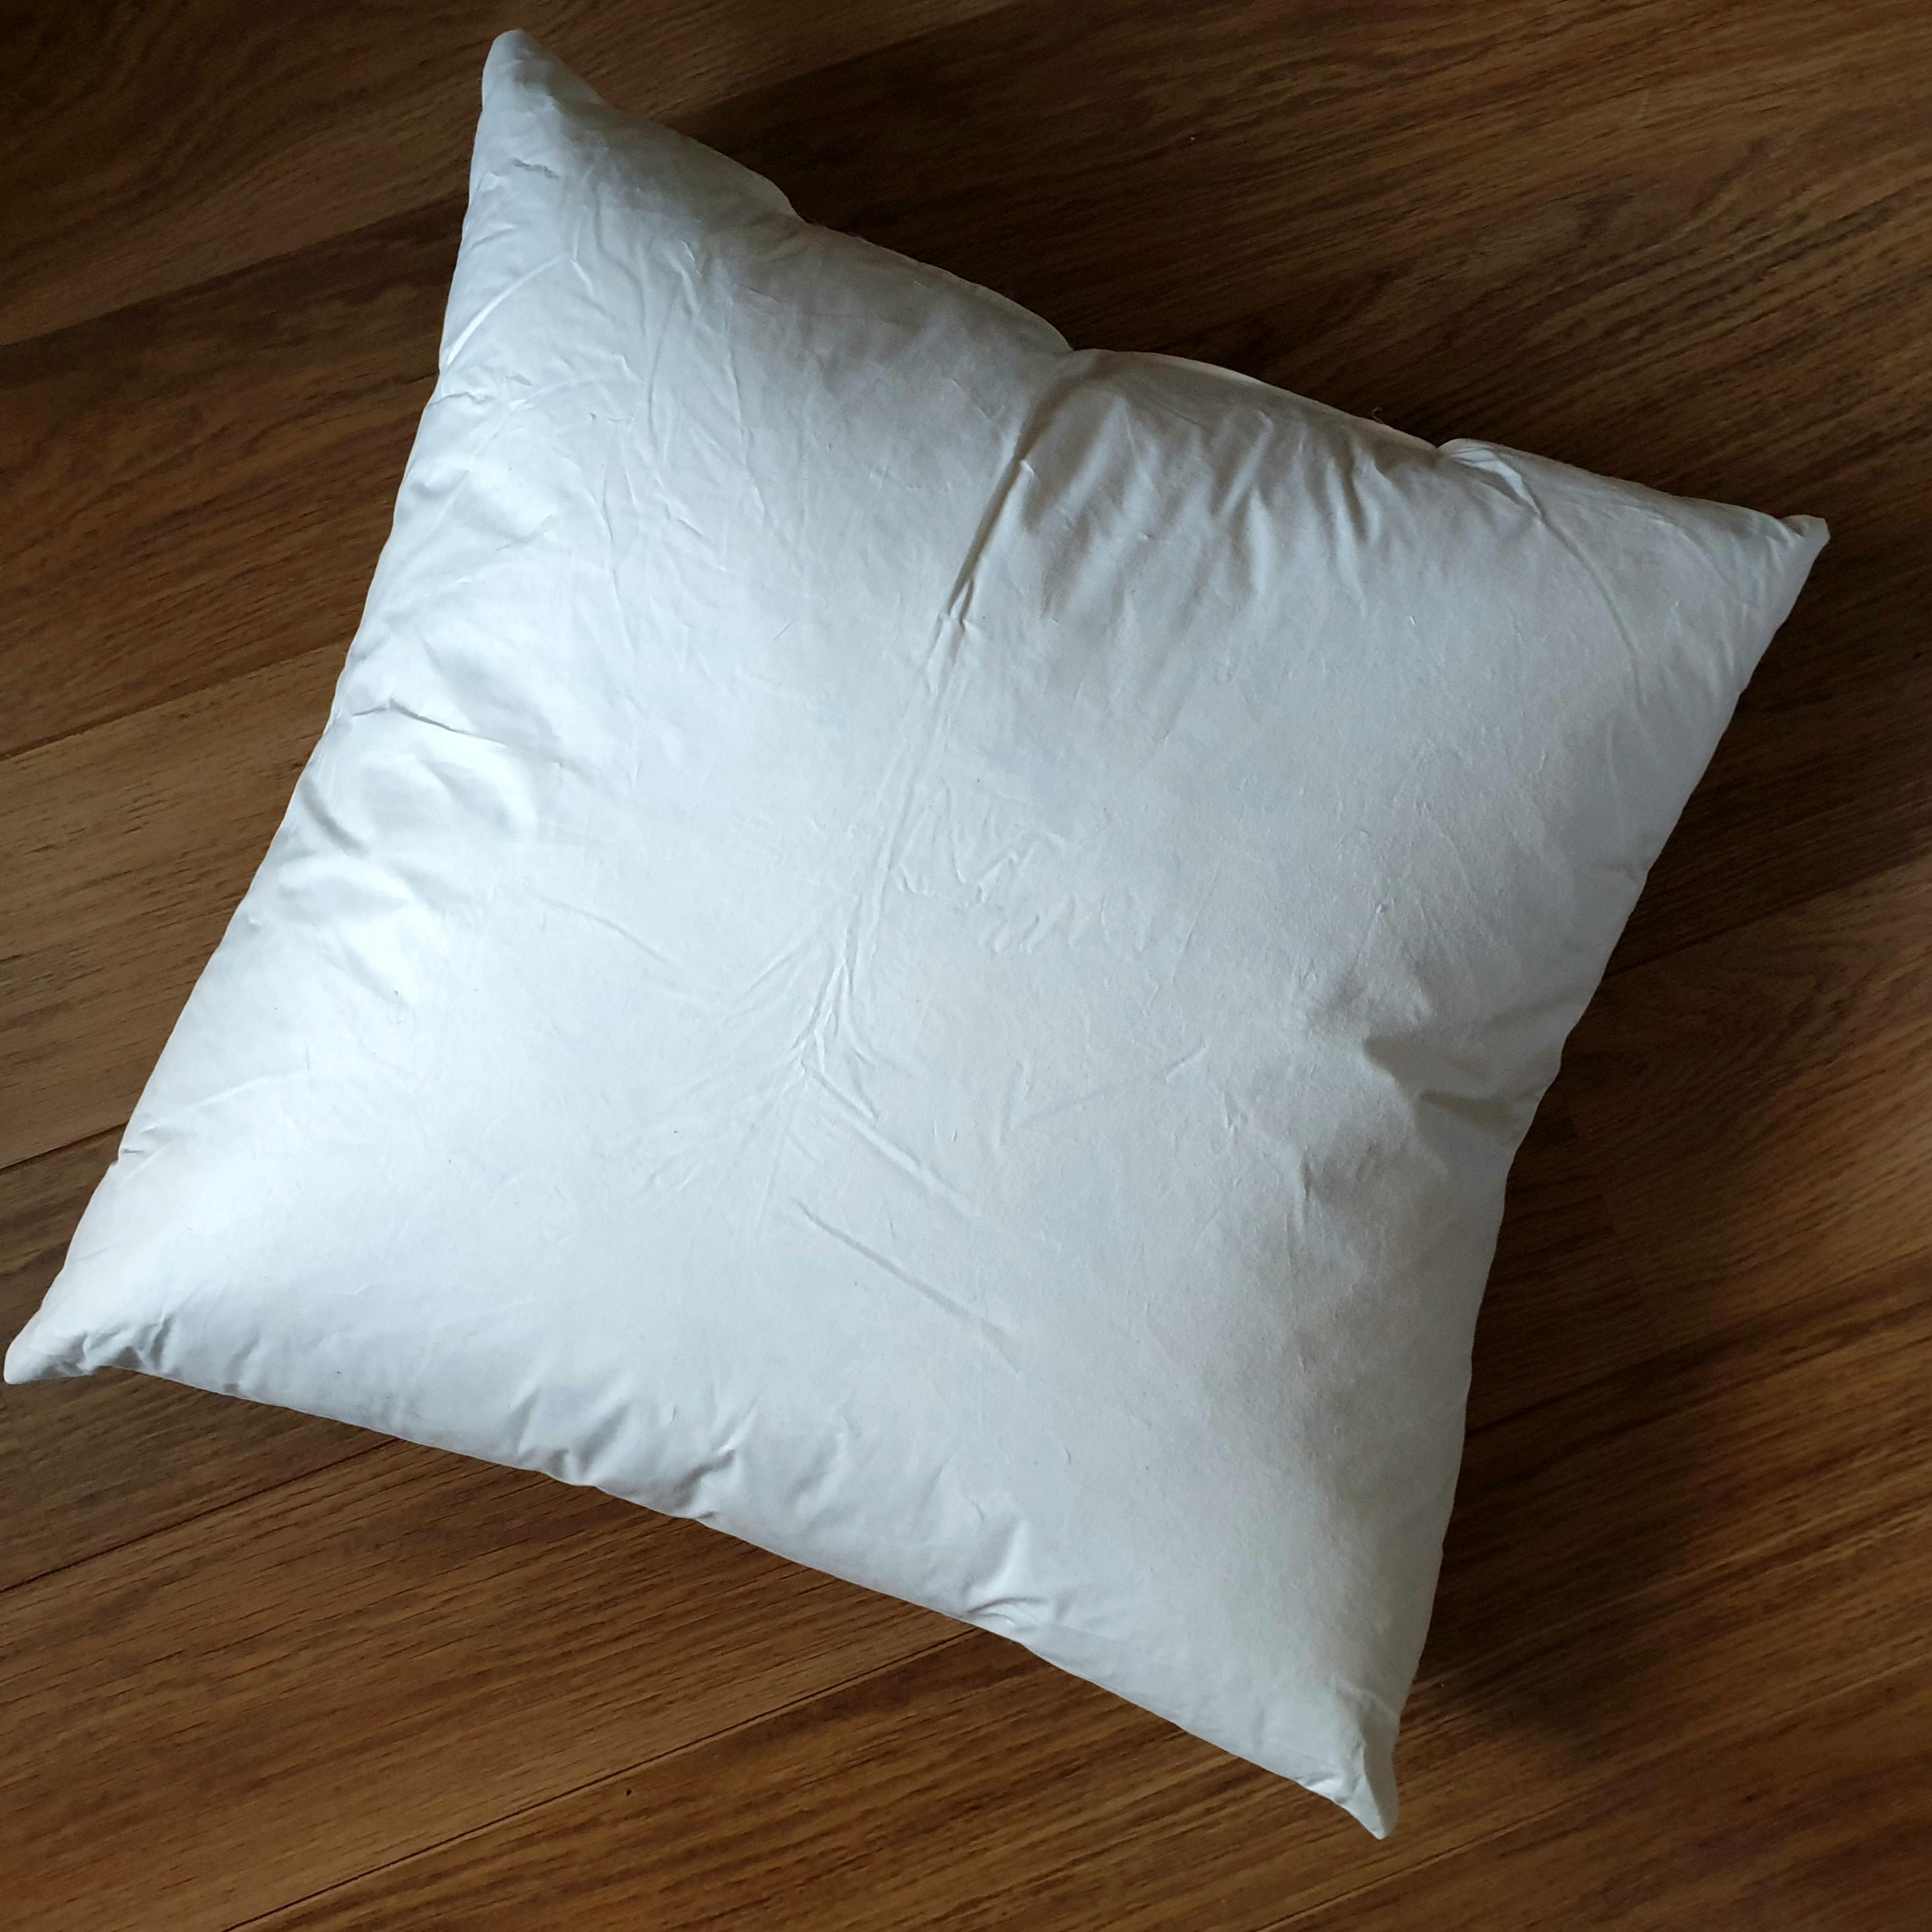 45cm cushion inner pad generously filled with 100% white duck feathers in ecru cream 100% cotton outer cover.